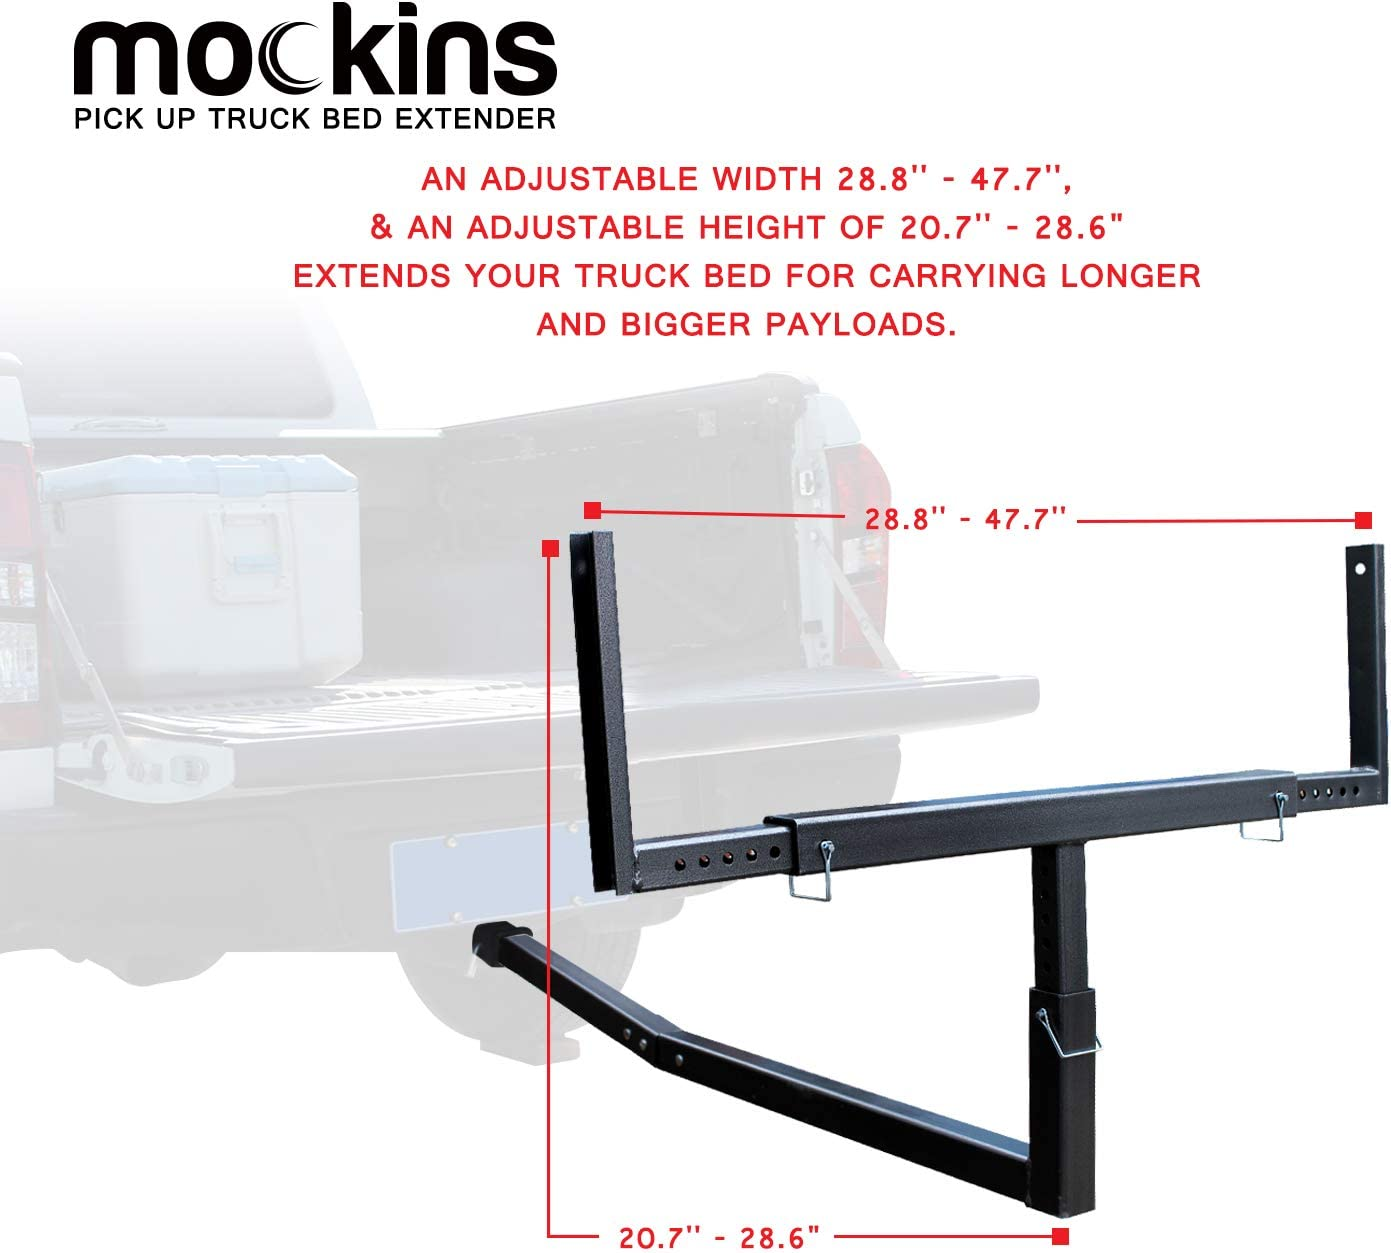 Mockins Heavy Duty Steel Pick Up Truck Bed Extender with Ratchet Straps Stainless The Hitch Mount Truck Bed Extension can be Used for Lumber or a Ladder or a Canoe /& Kayak